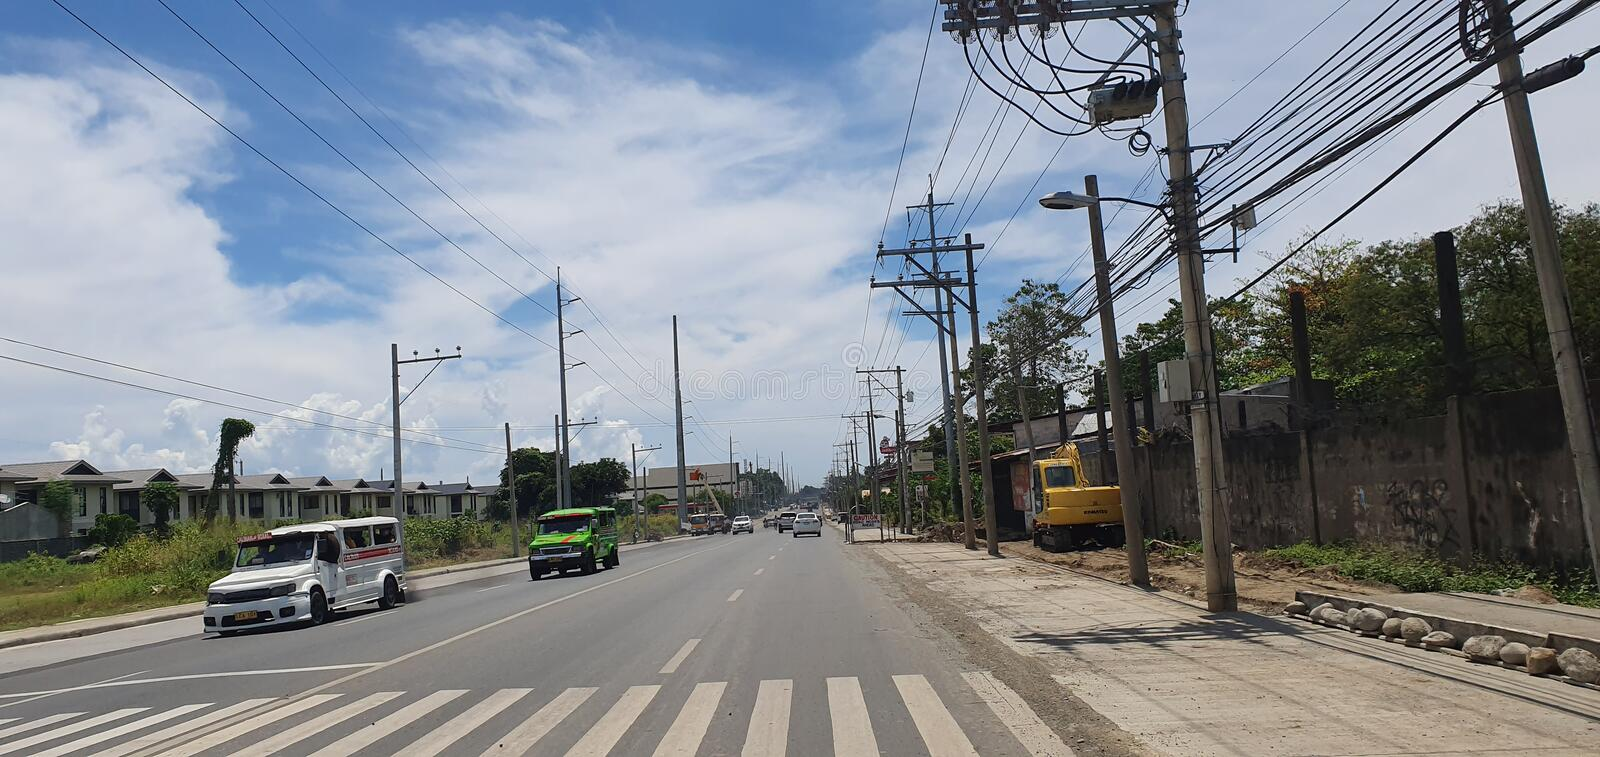 Highway Road in Davao City, Philippines stock image